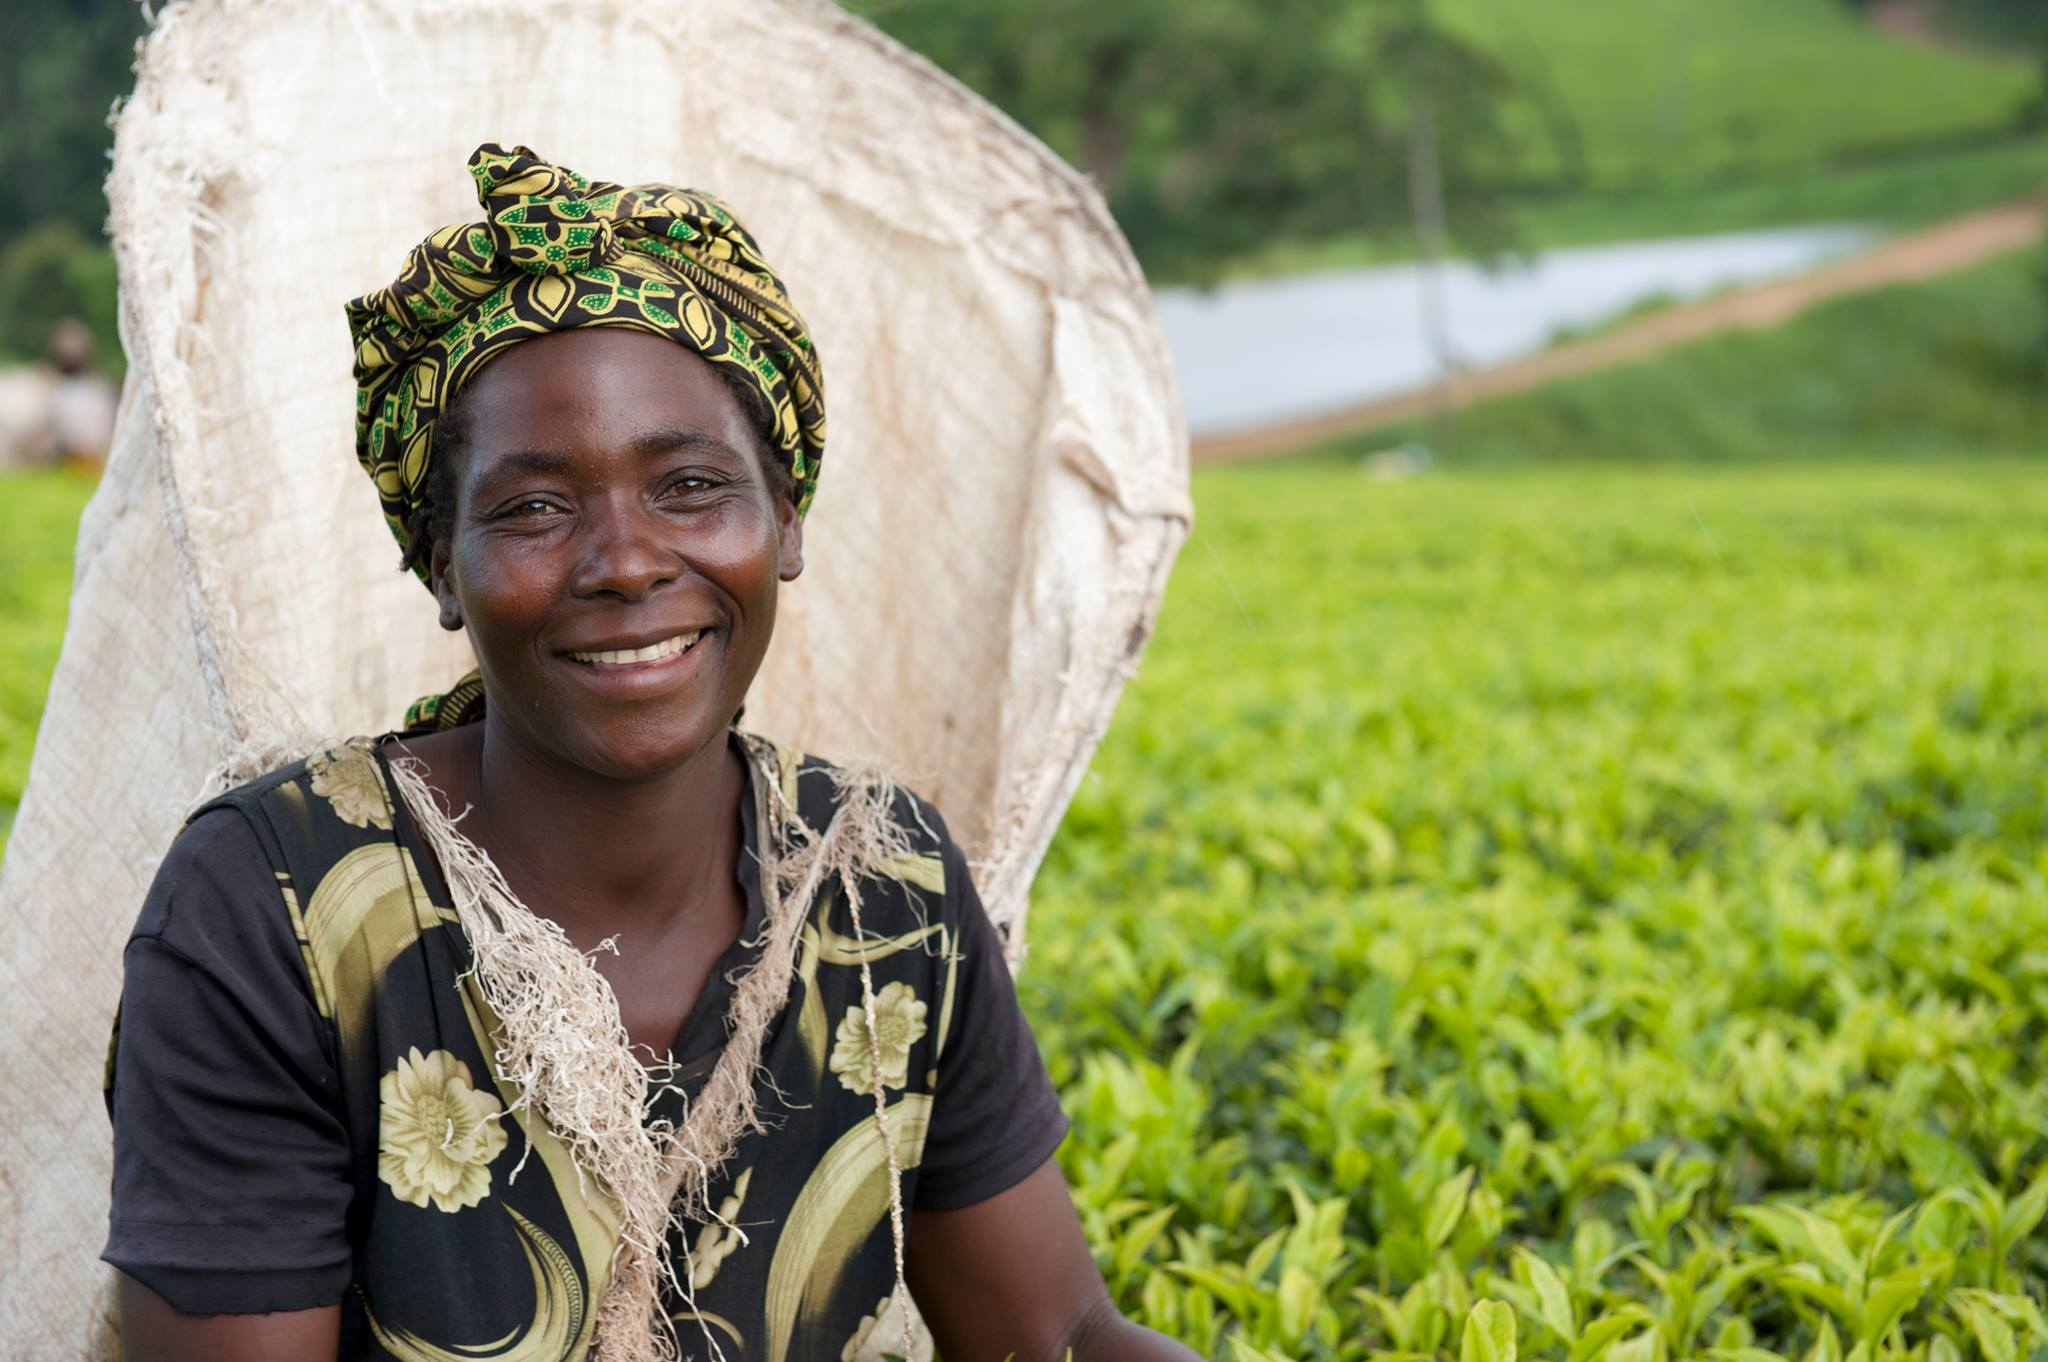 Satemwa Tea Estate is a sustainable tea company in Malawi.